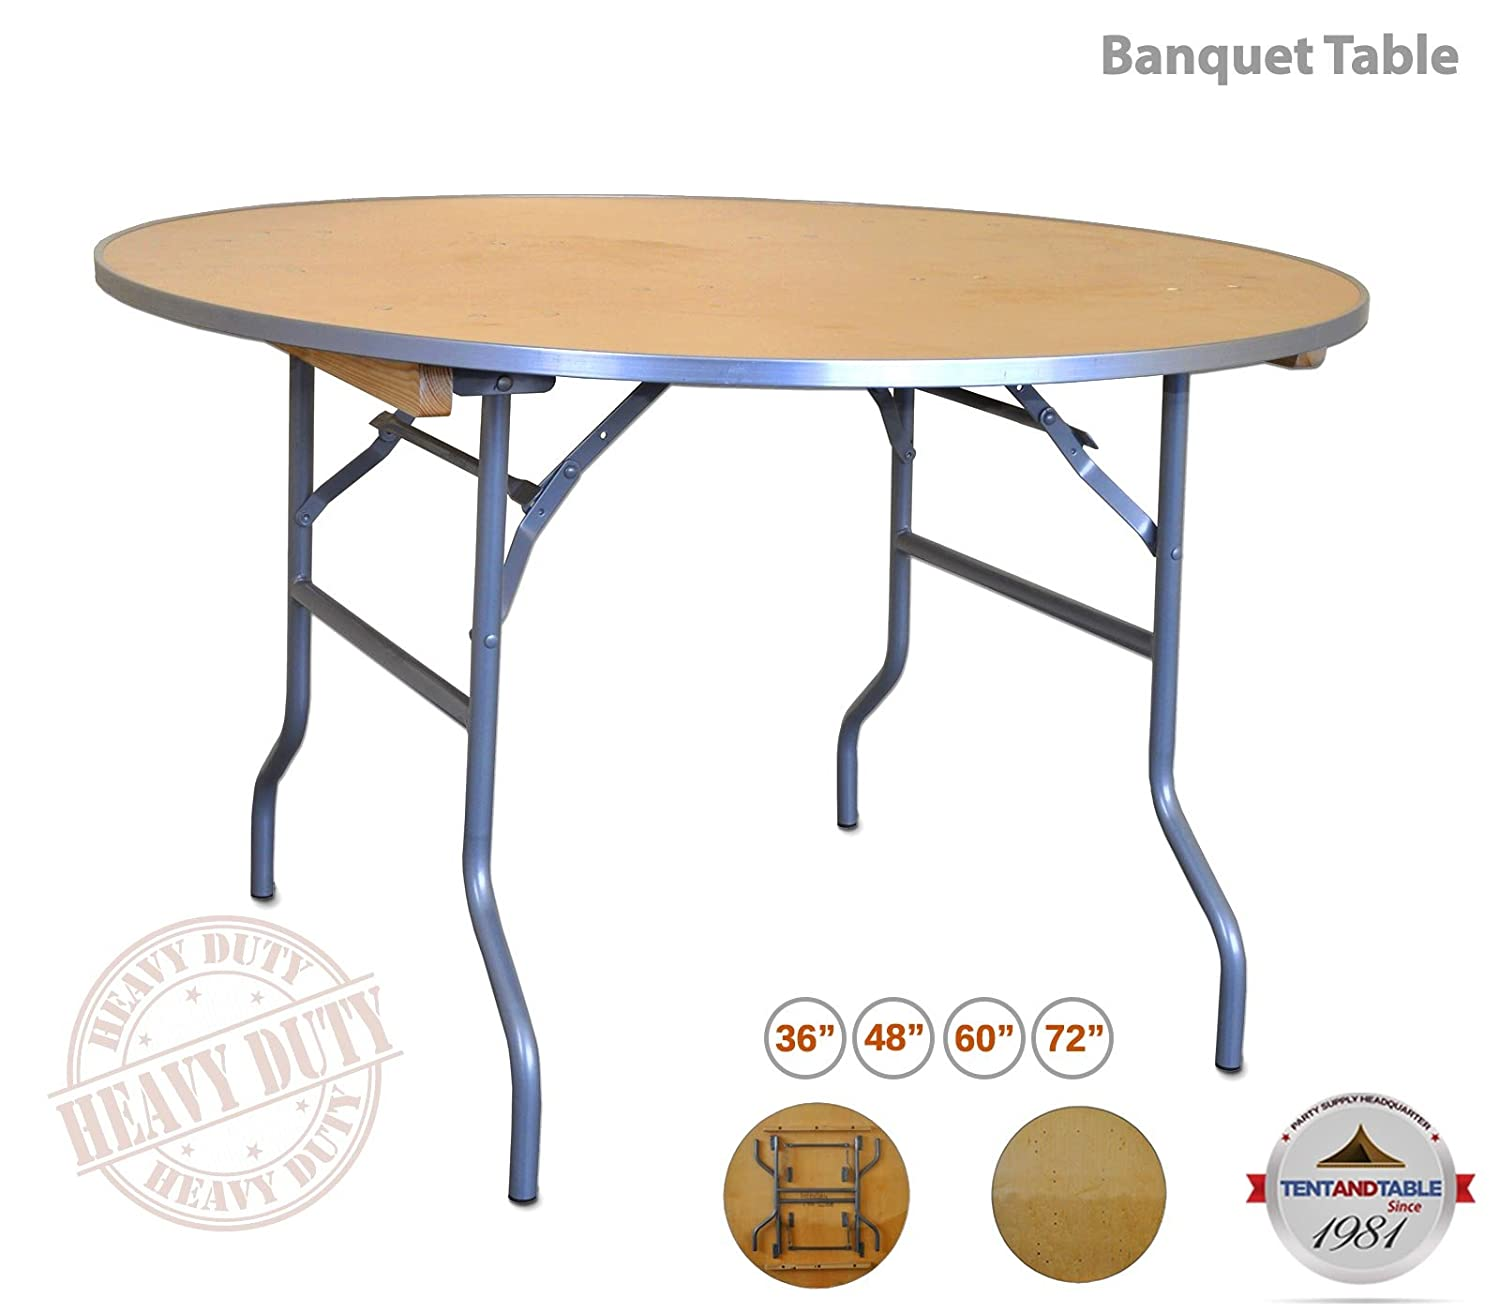 Heavy duty 5 foot 60 inch diameter round solid birch wood folding table with 30 inch height and aluminum edge for weddings parties and events 6 pack